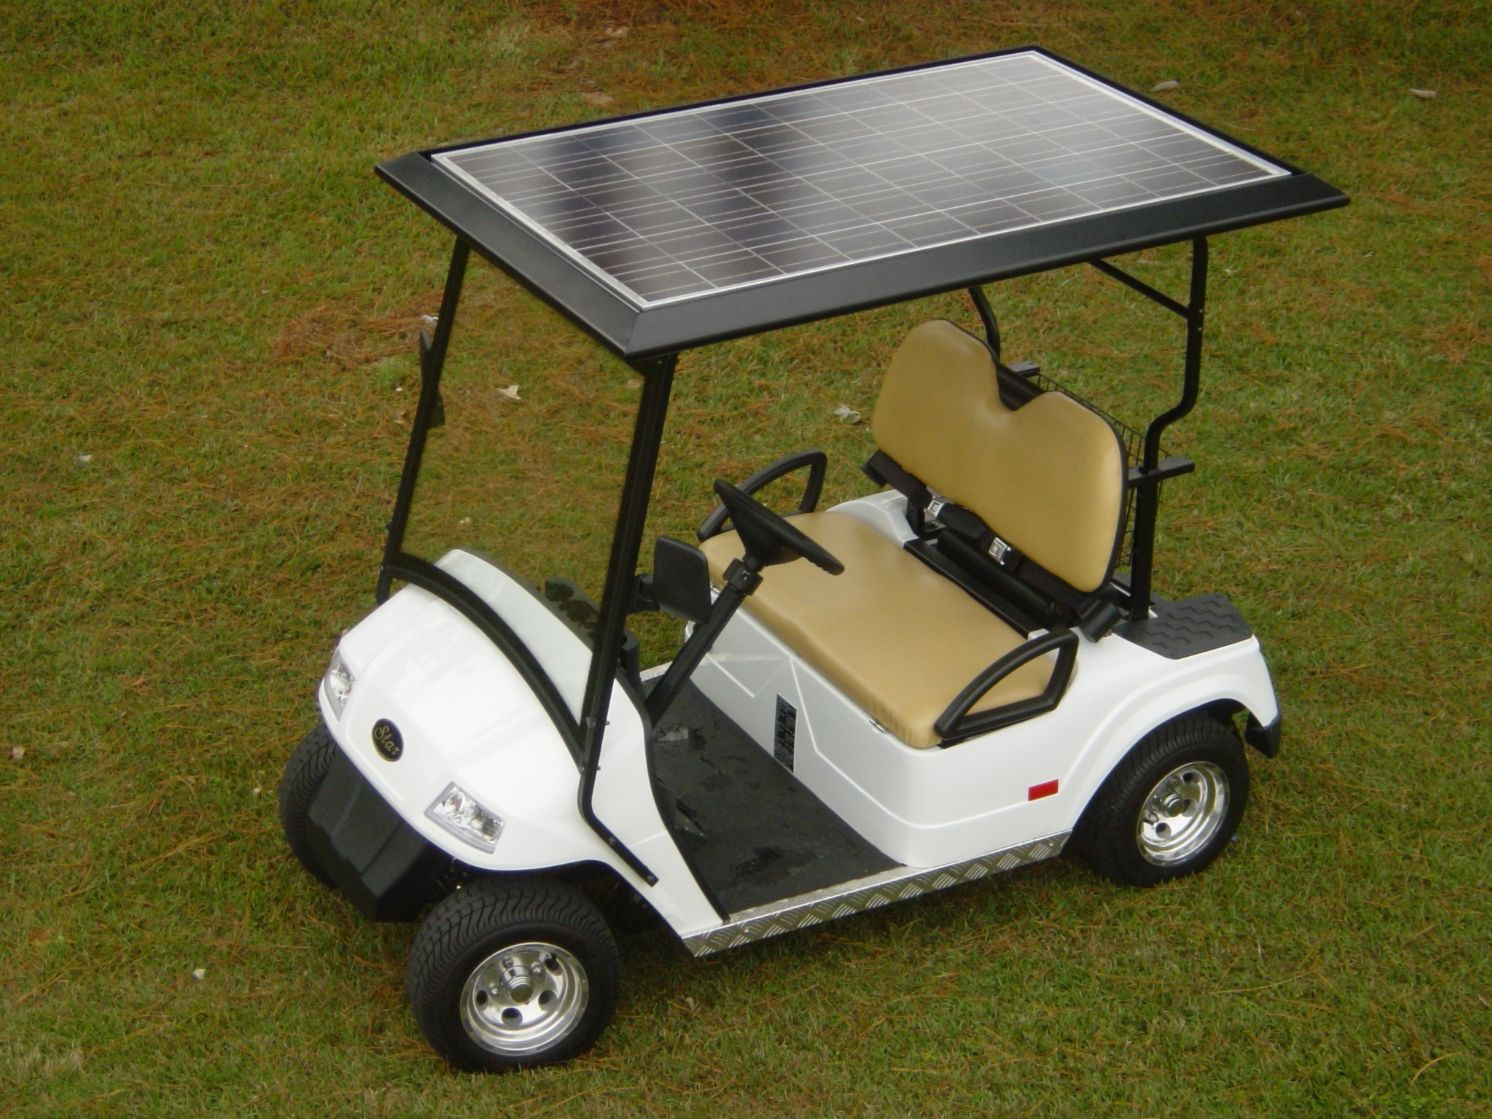 Golf Cart Parts/Accessories - Yamaha, E-Z-GO, Club Cars Ezgo Golf Cart Electrical Components on hot golf carts, luxury golf carts, ezgo hunting carts, custom golf carts, john deere golf carts, commercial golf carts, used golf carts, concept golf carts, polaris golf carts, utility golf carts, yamaha golf carts, dodge golf carts, solar panels for golf carts, gas golf carts, honda golf carts, electric golf carts, ebay golf carts, accessories golf carts, lifted golf carts, golf push carts,